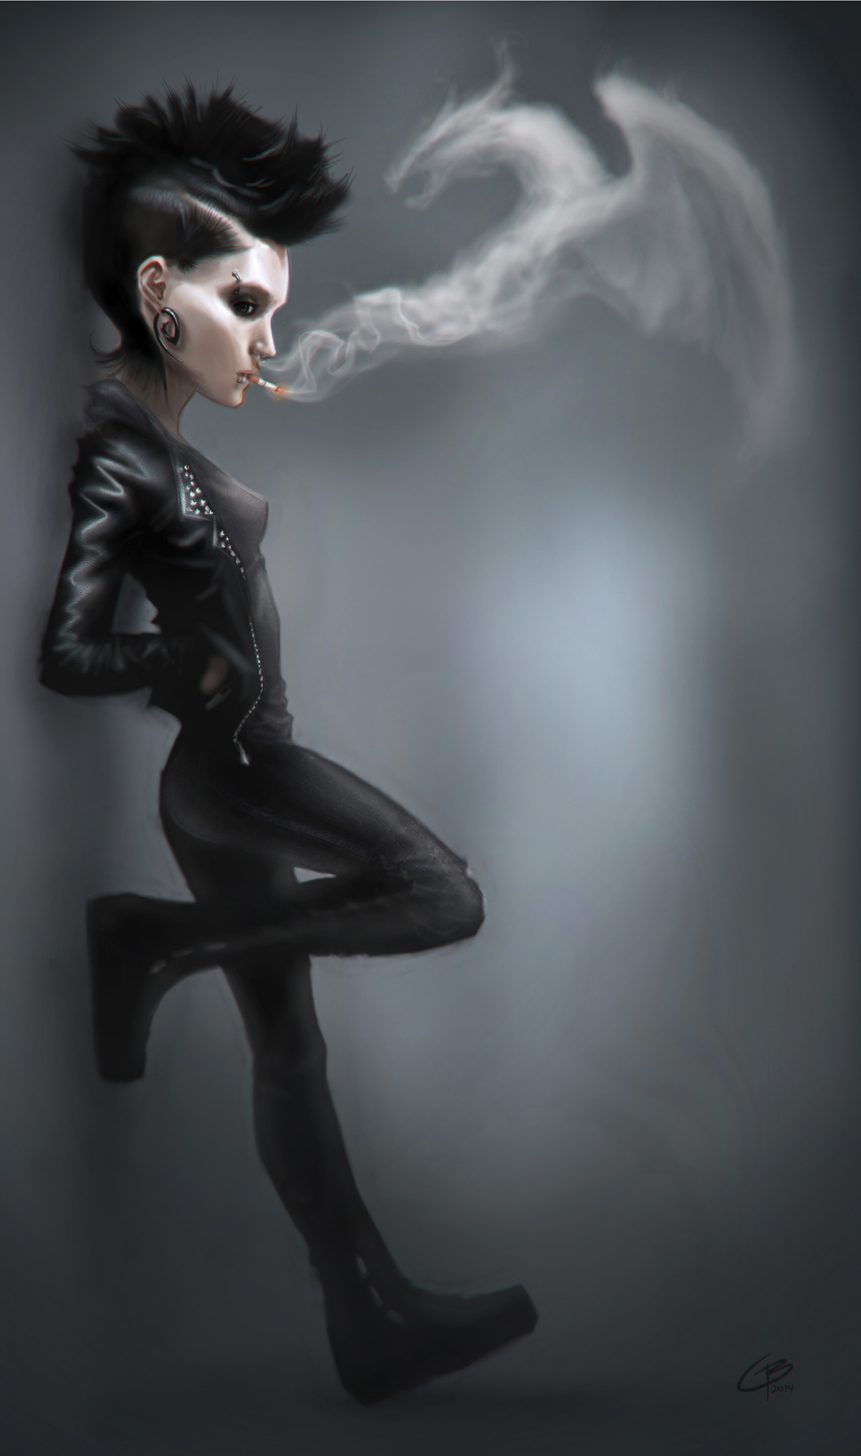 lisbeth_salander___the_girl_with_the_dragon_tattoo_by_tiguybou-d7hb3ea.jpg